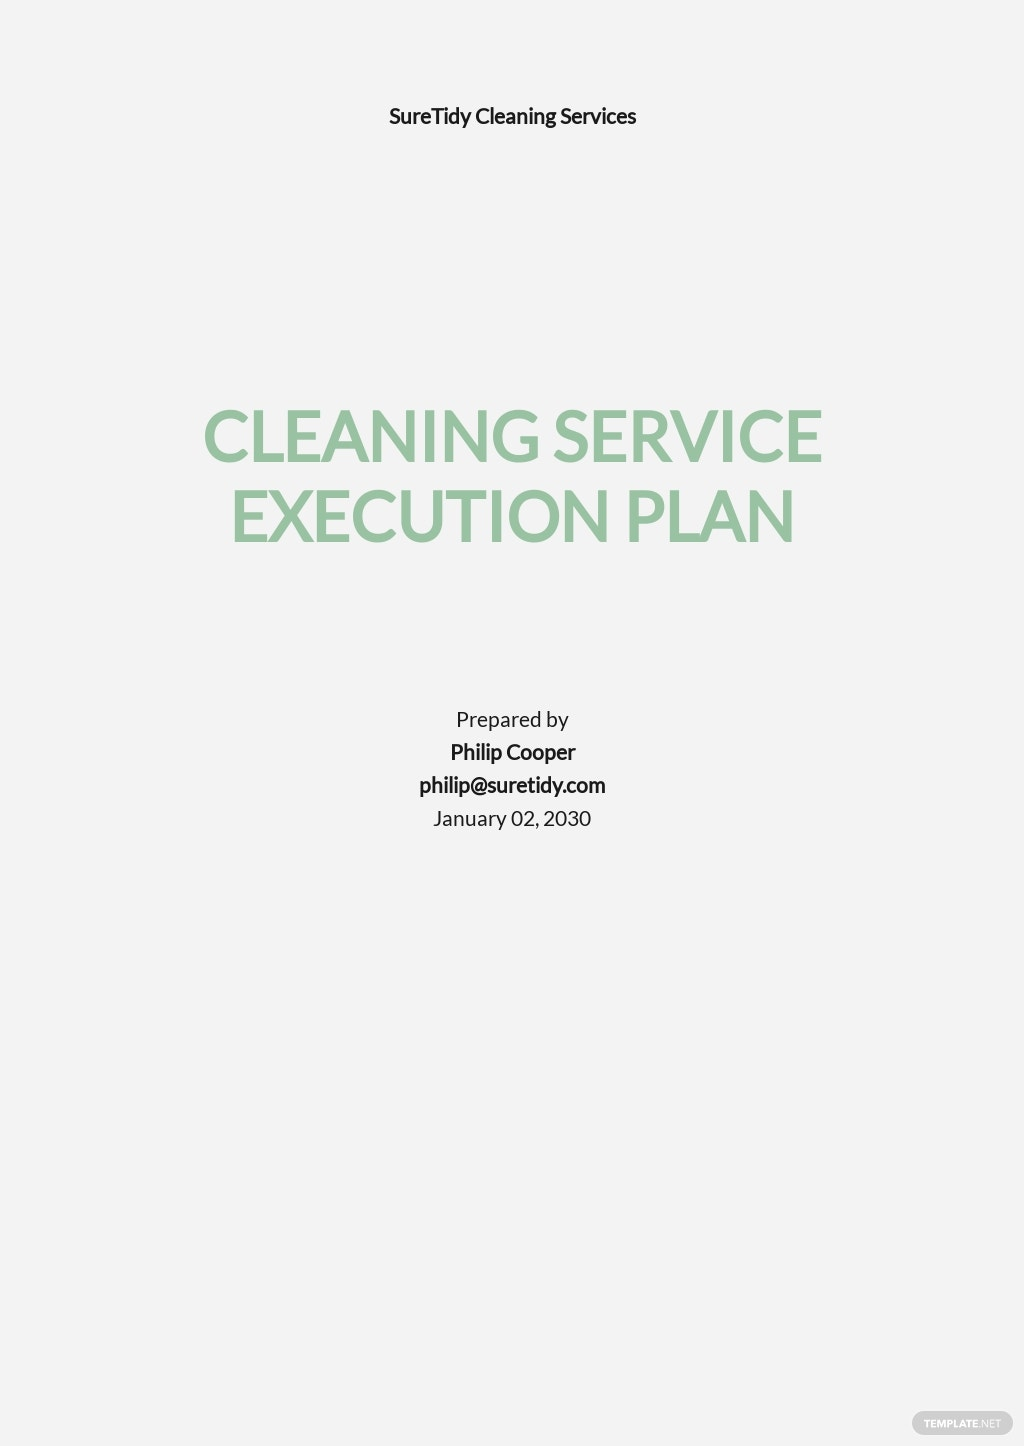 Execution Plan Template for Cleaning Services.jpe